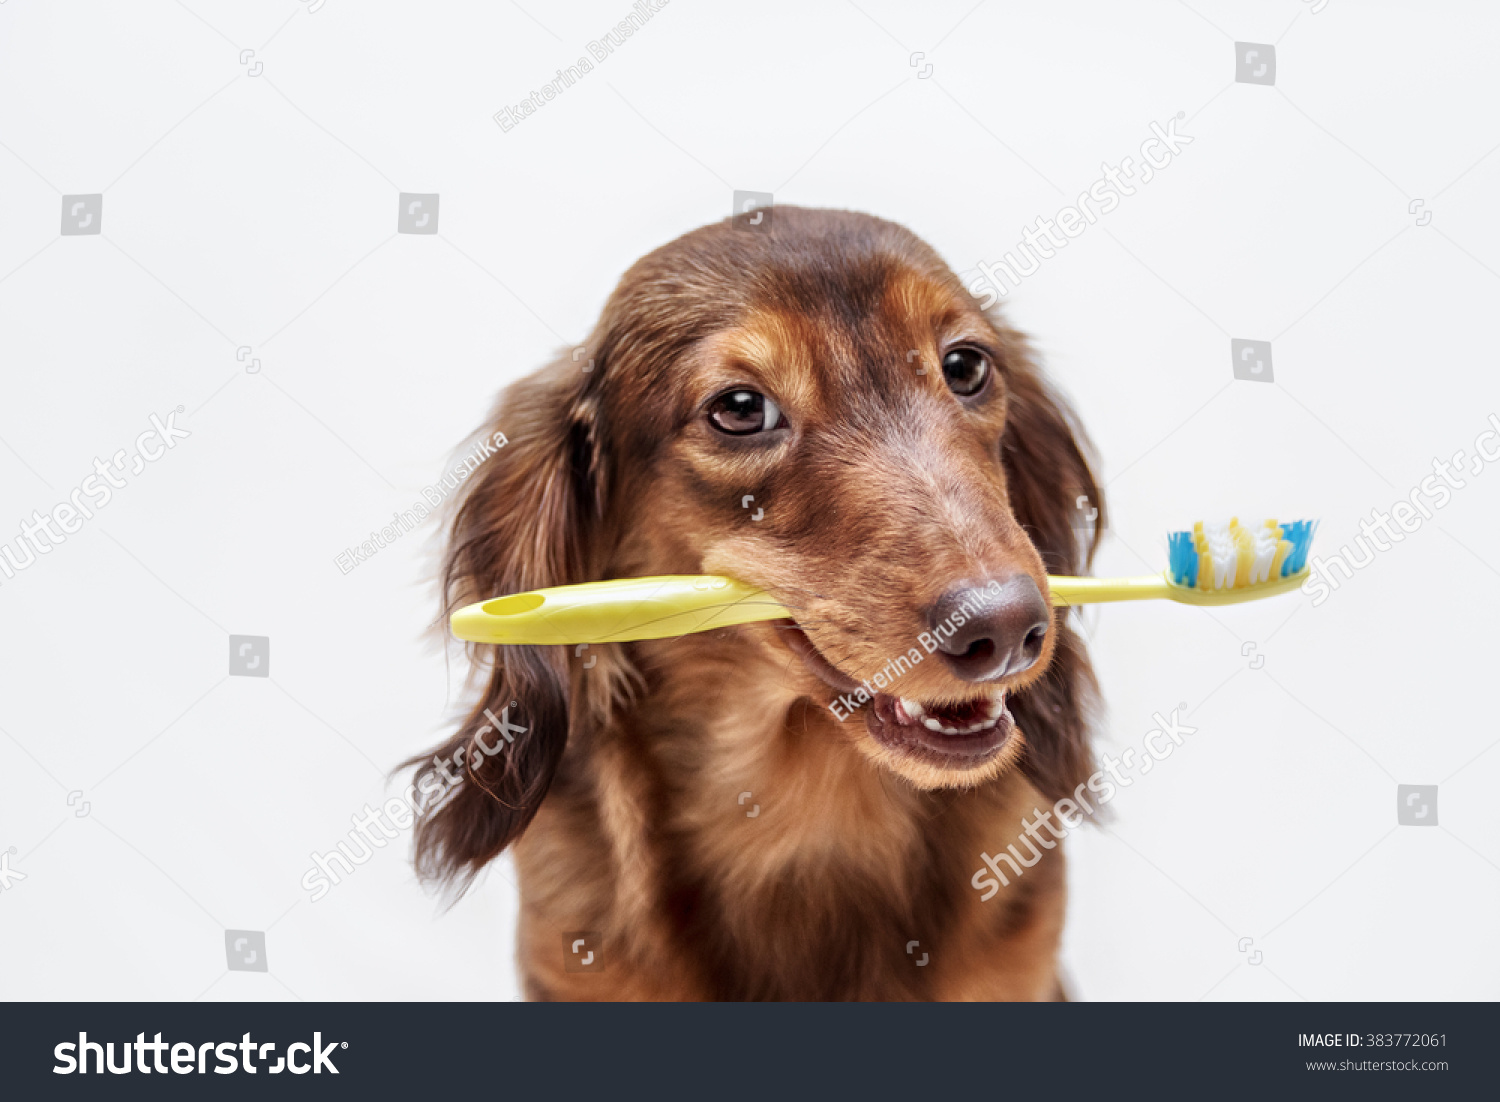 dachshund dog toothbrush on light background stock photo 383772061 shutterstock. Black Bedroom Furniture Sets. Home Design Ideas